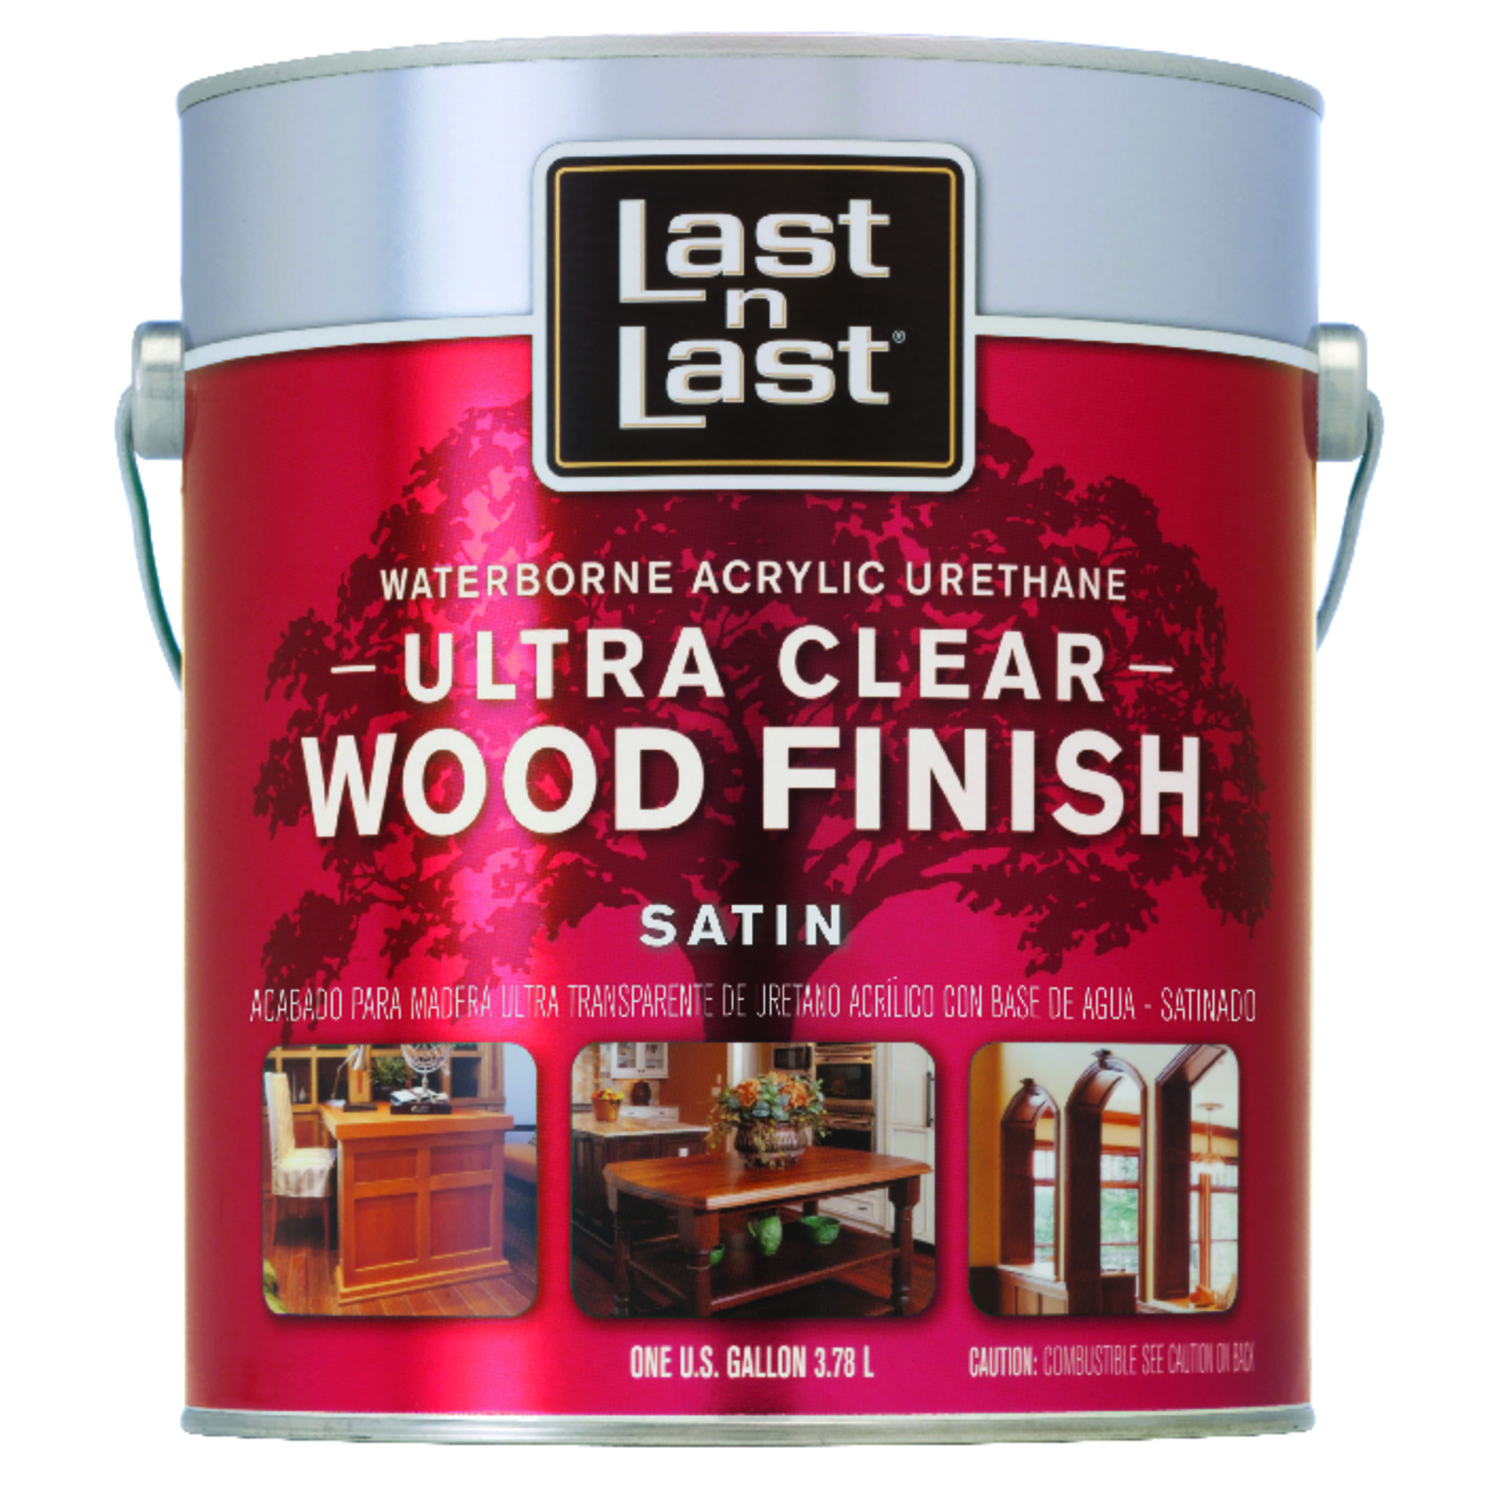 Last N Last Waterborne Wood Finish Acrylic Urethane   Satin   Ultra Clear 1 Gal.  275 VOC g/l